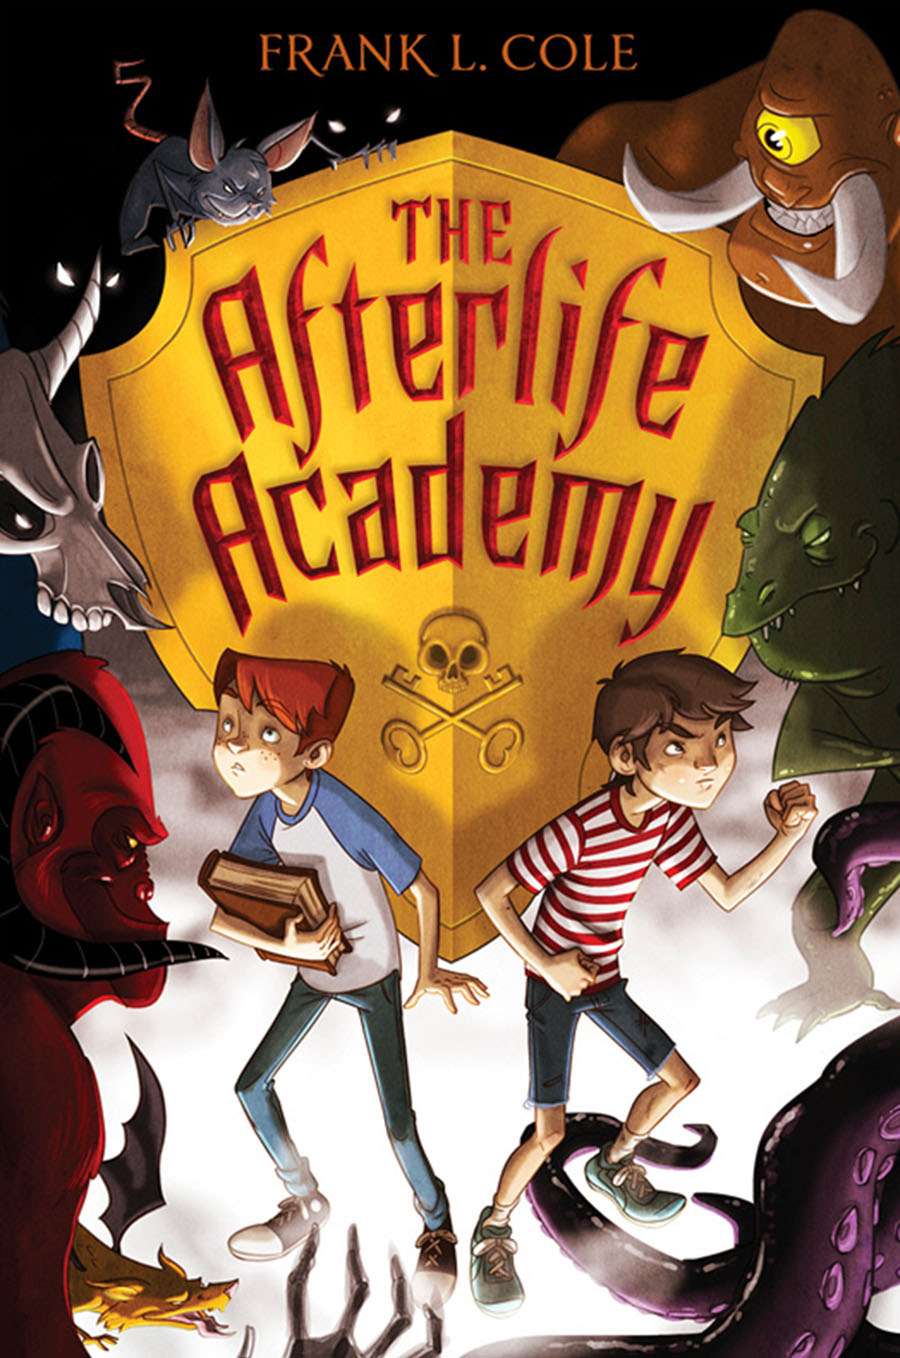 Cover the The Afterlife Academy; two boys standing in front of a yellow heraldric shield with the title on it.